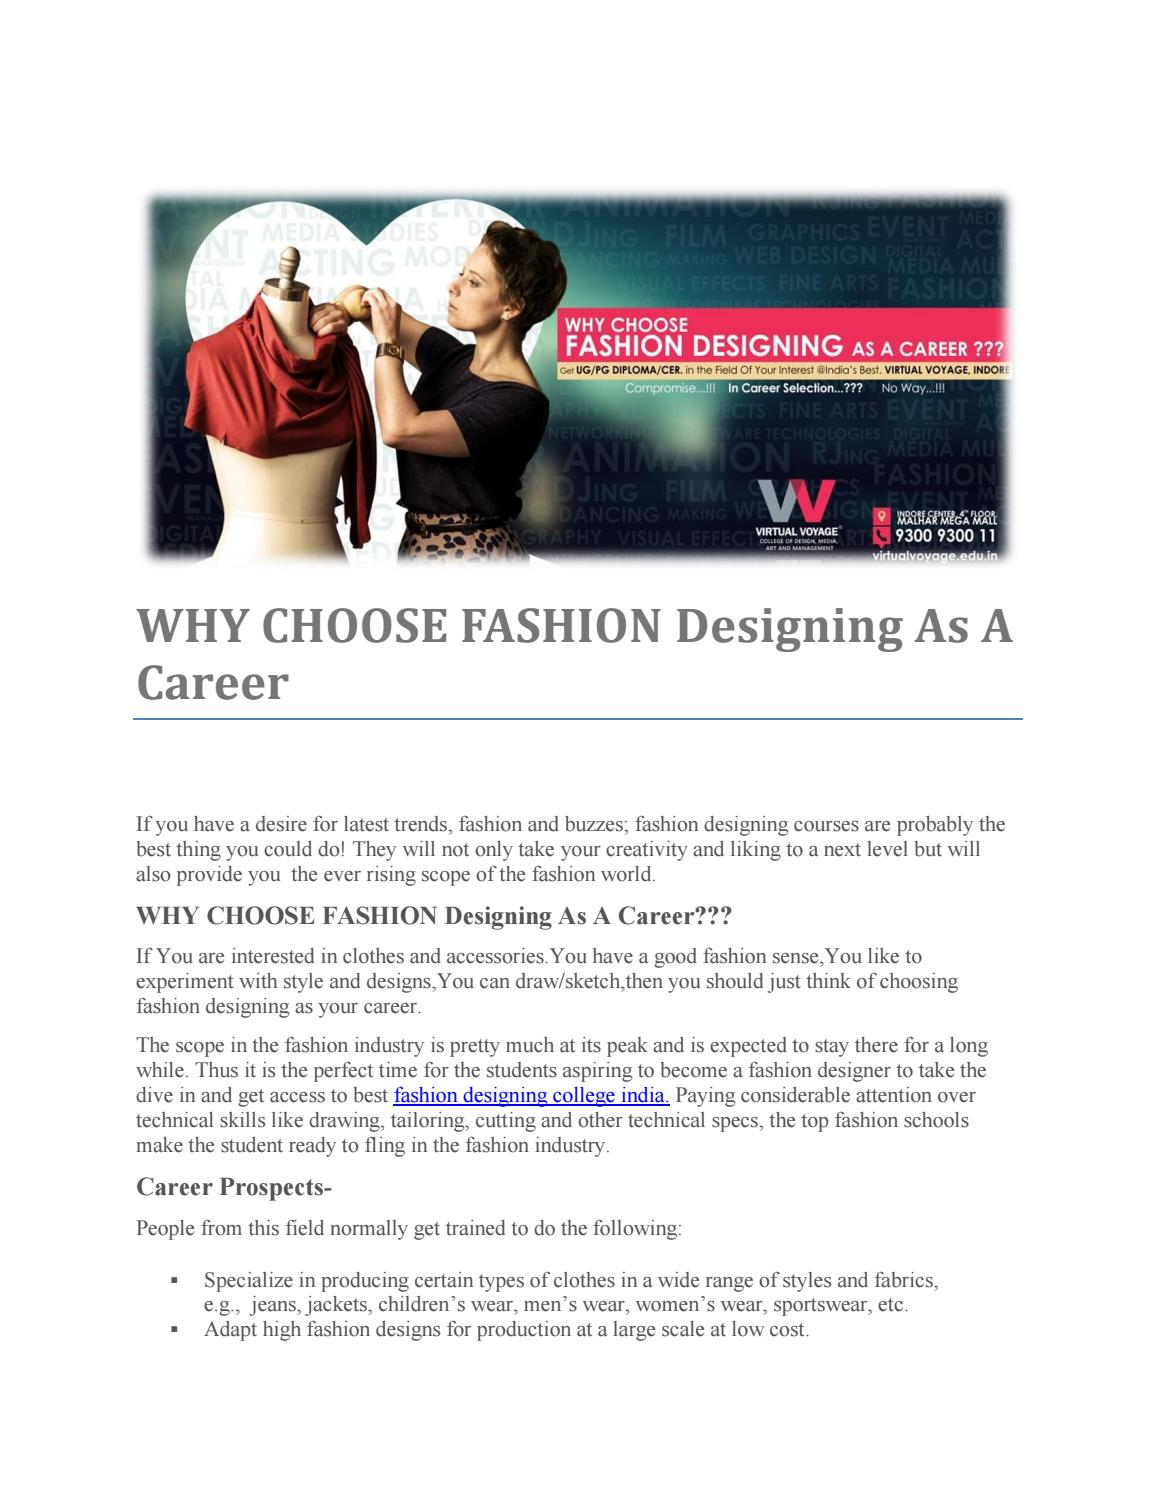 Why Choose Fashion Designing As A Career By Taher Virtual Issuu